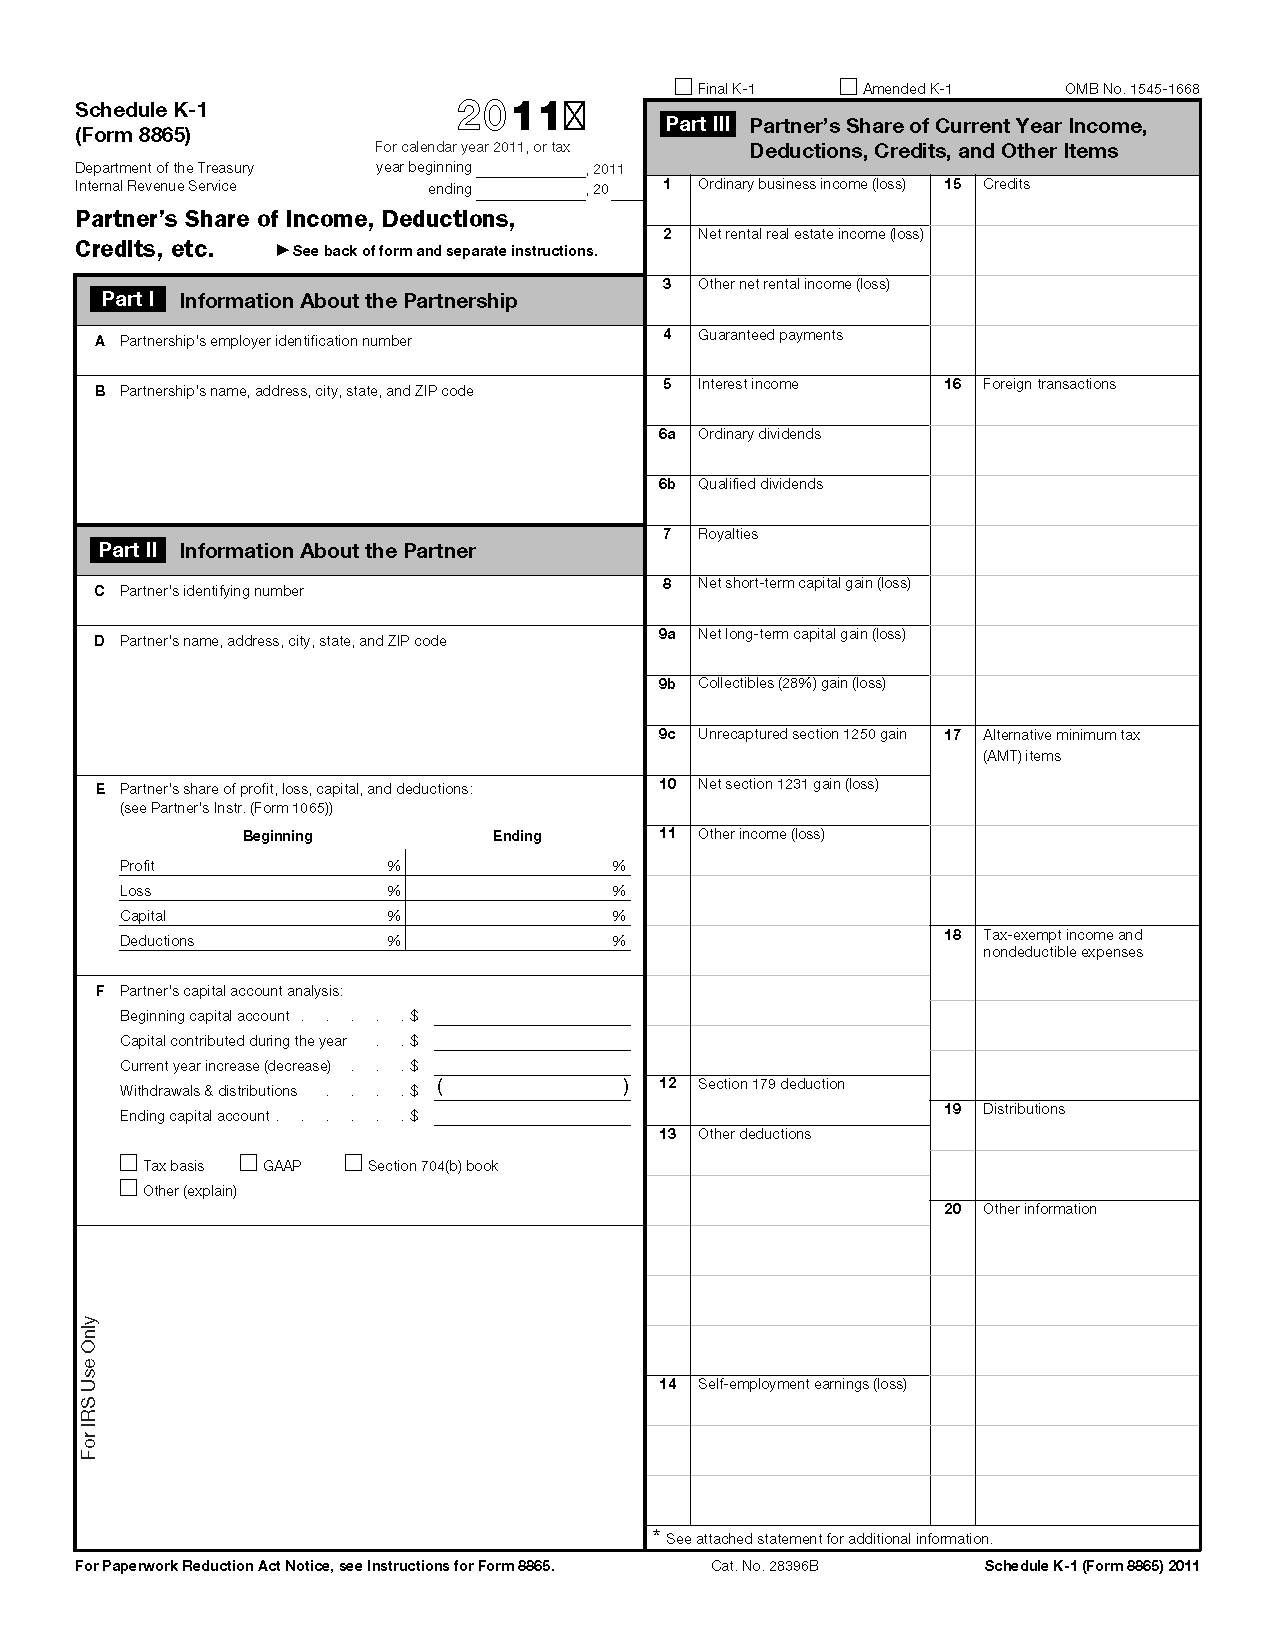 Form 8865 (Schedule K-1) Partner's Share of Income, Deductions ...